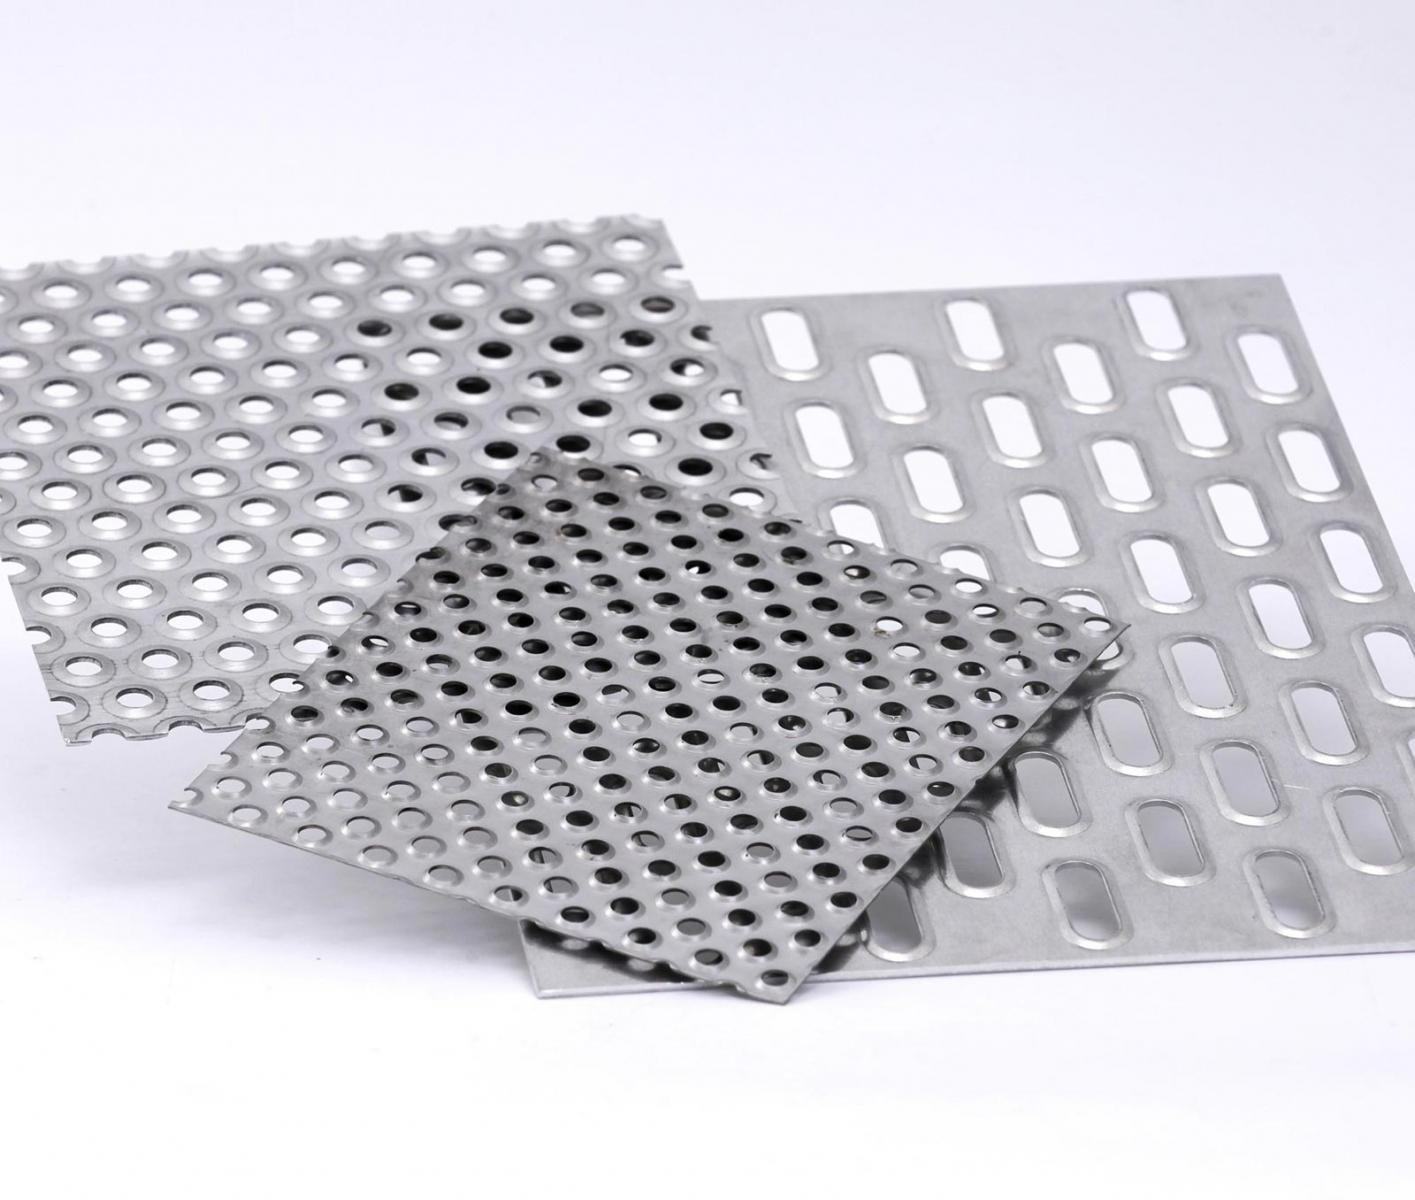 Perforated metal sheets 3